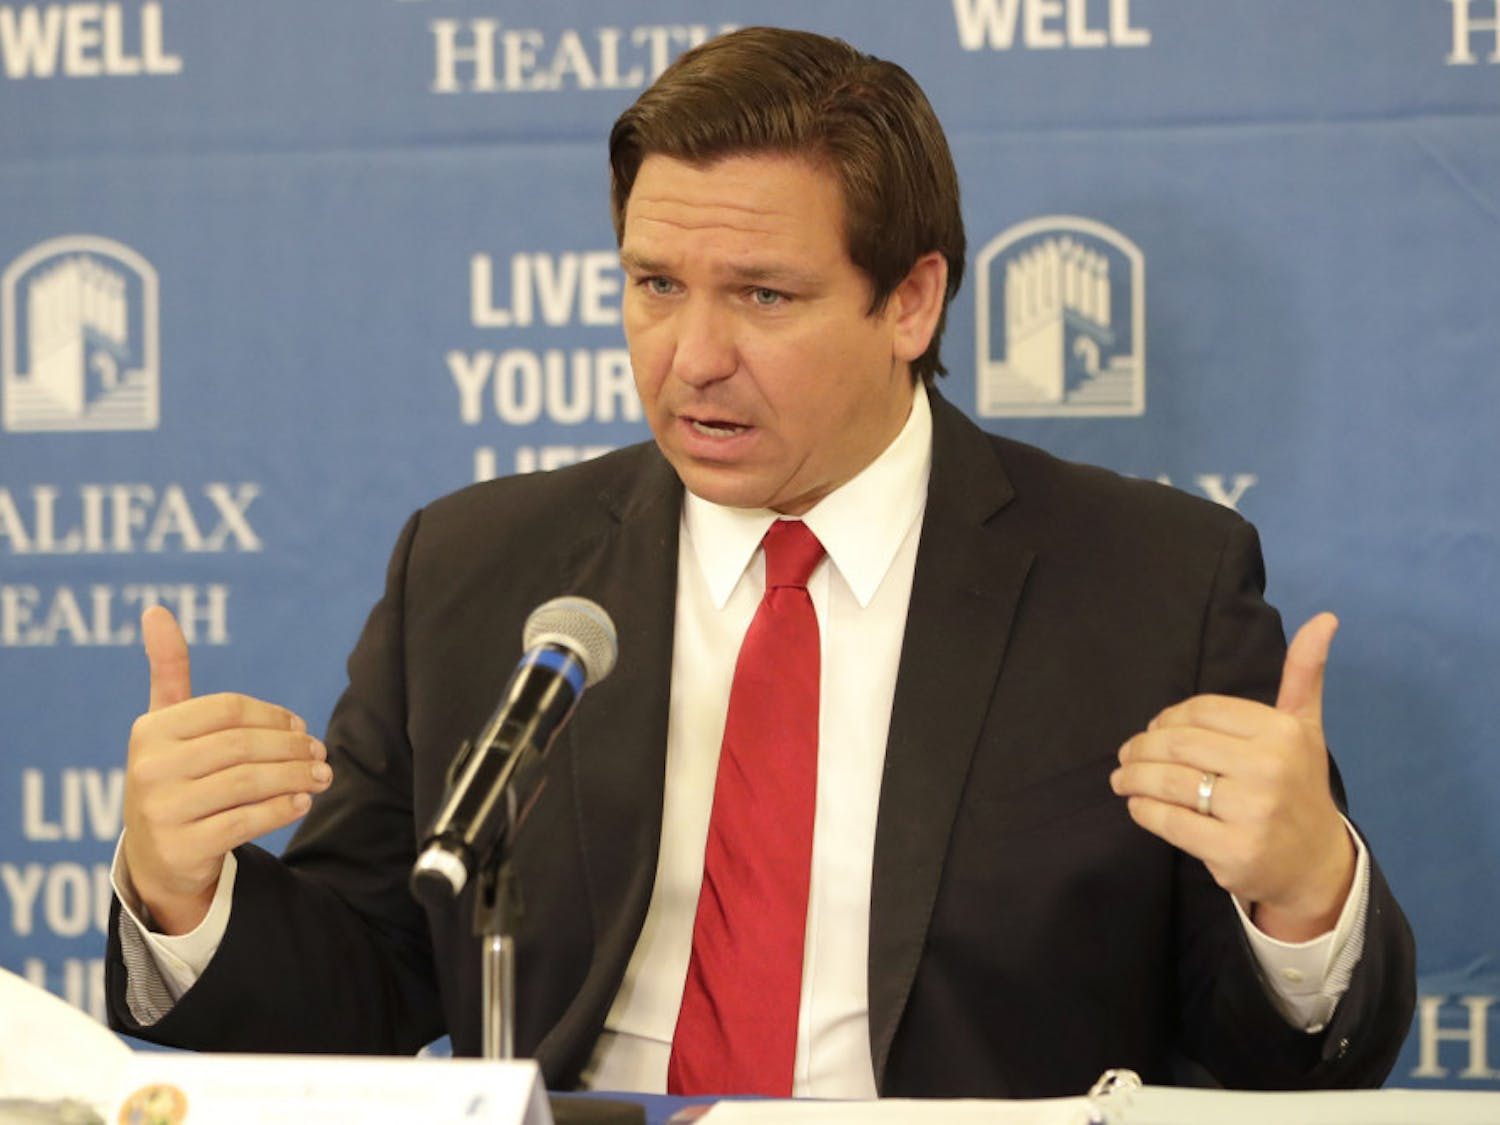 Florida Gov. Ron DeSantis speaks at a news conference at Halifax Health Medical Center Sunday, May 3, 2020, in Daytona Beach, Fla. Business owners across much of Florida were busy Sunday preparing to reopen Monday under new restrictions. Gov. Ron DeSantis said he's deliberately taking things slowly during re-opening. (AP Photo/John Raoux)